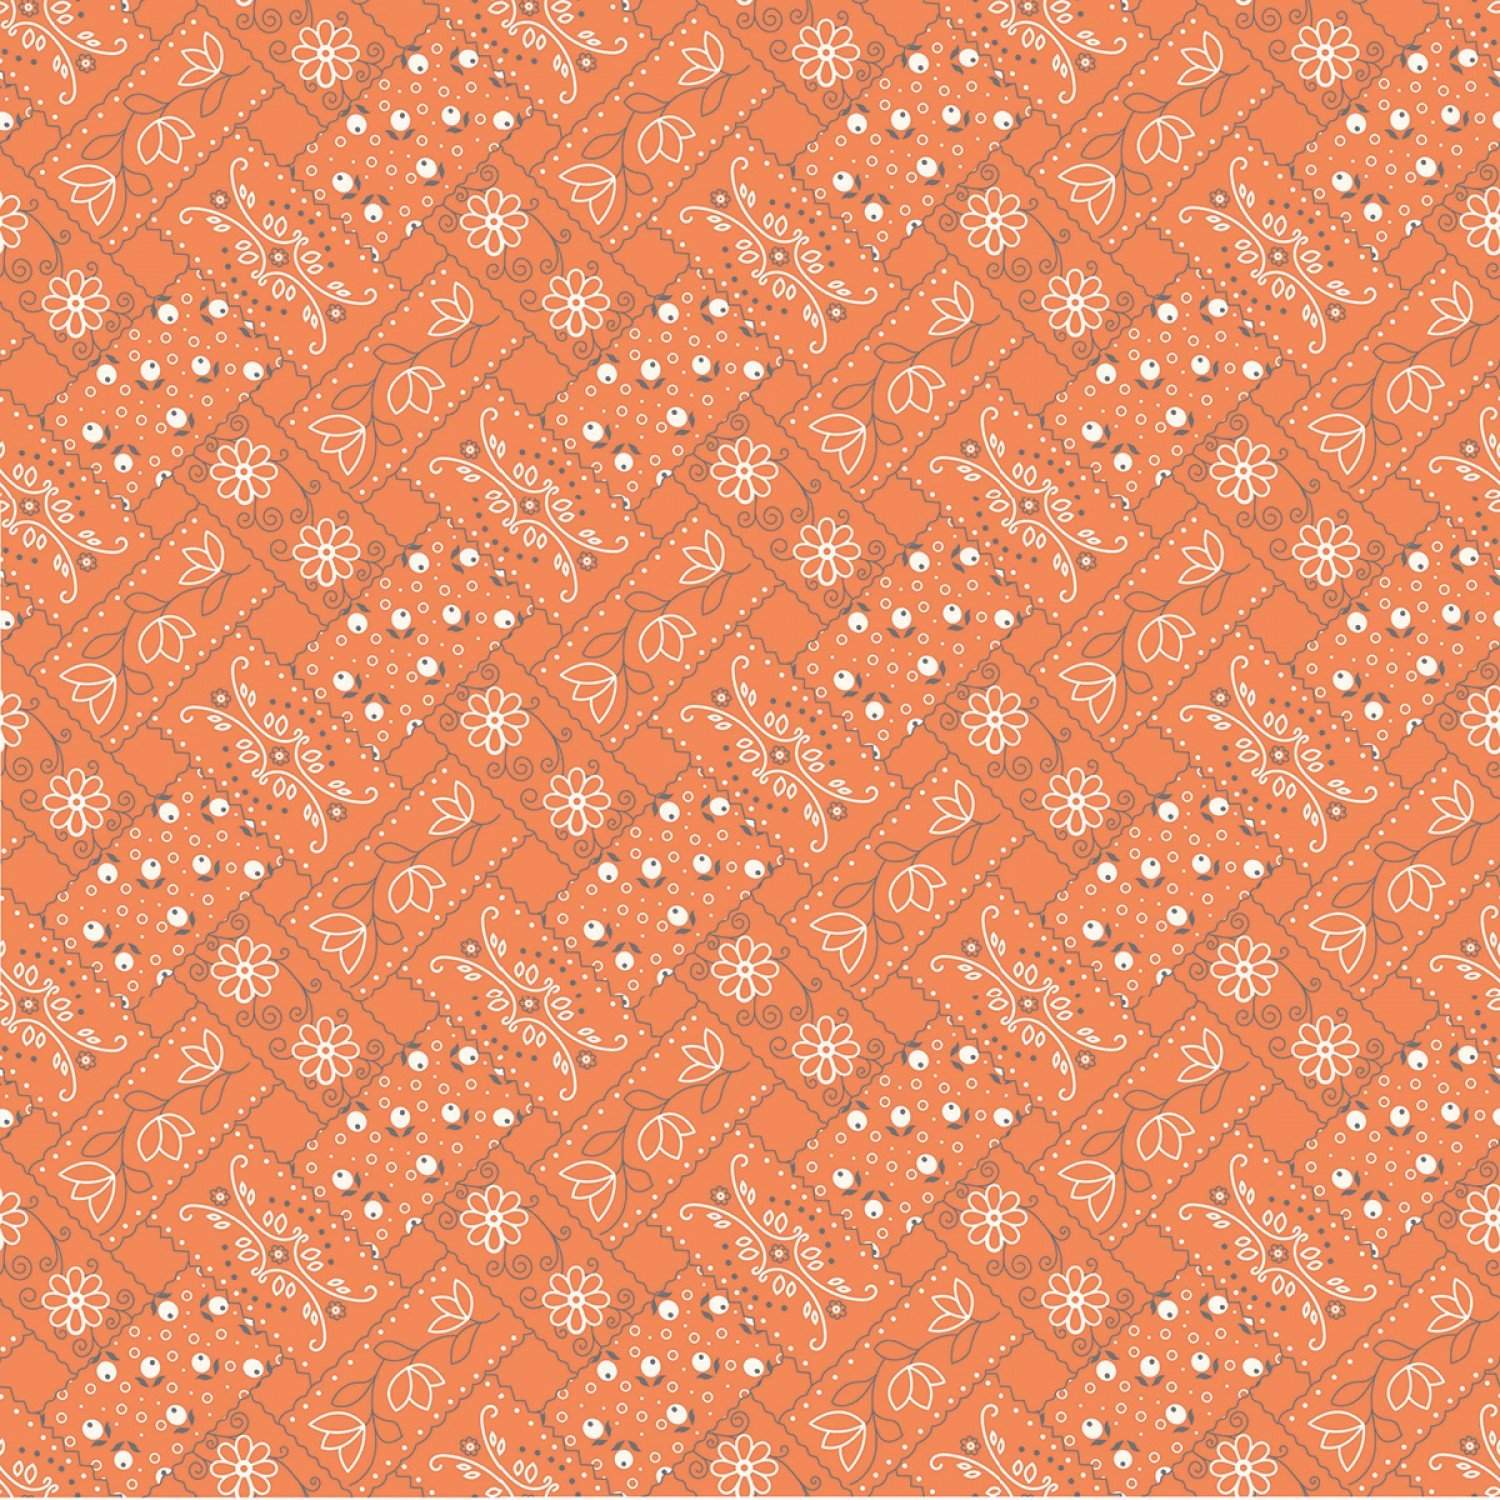 Farm Girl Vintage C7874 Orange by Lori Holt for Riley Blake Designs